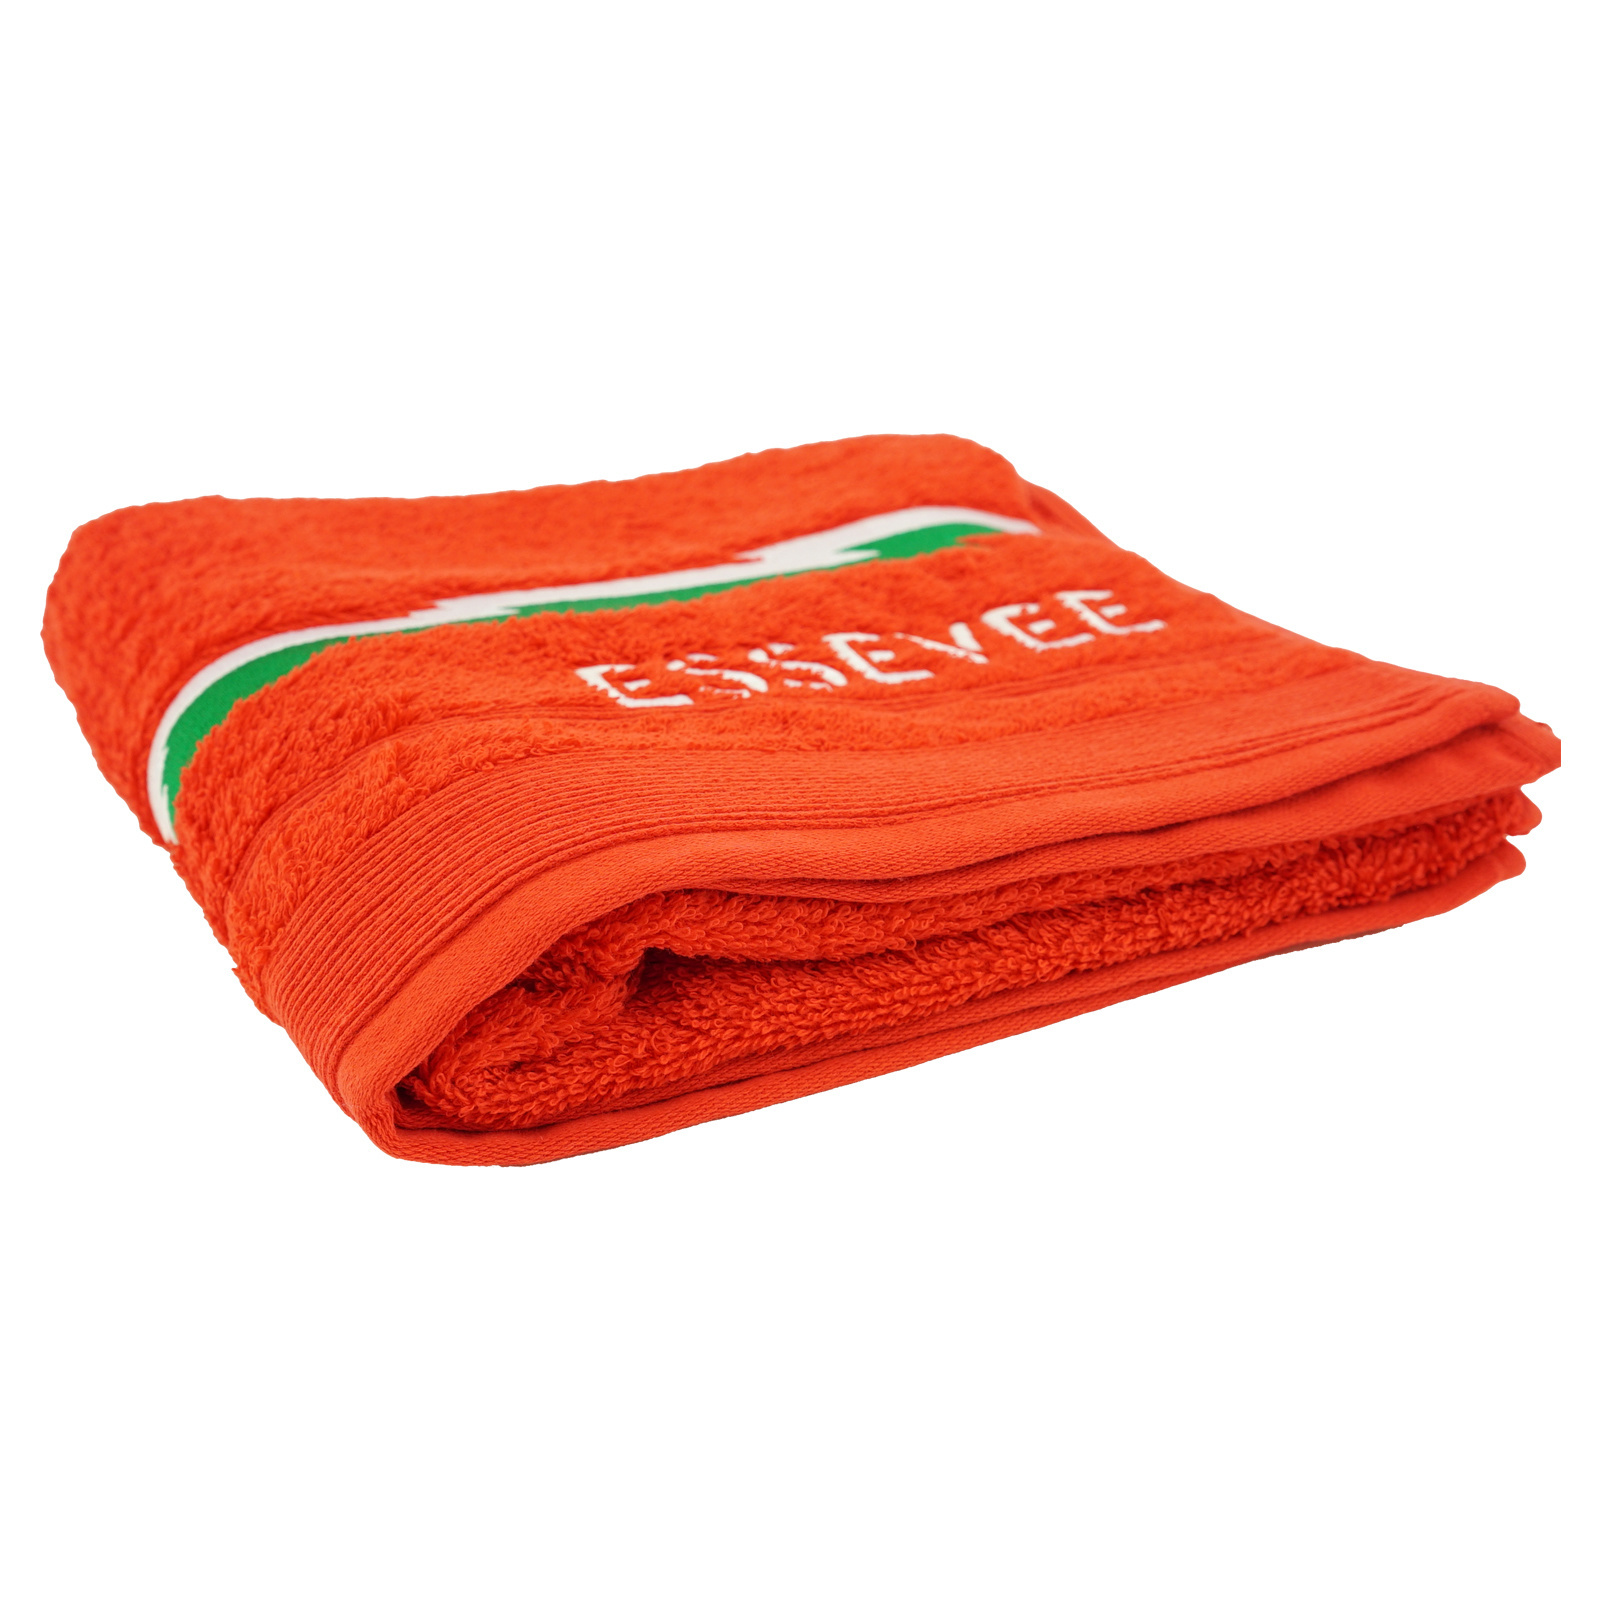 Topfanz Towel lightning green white M